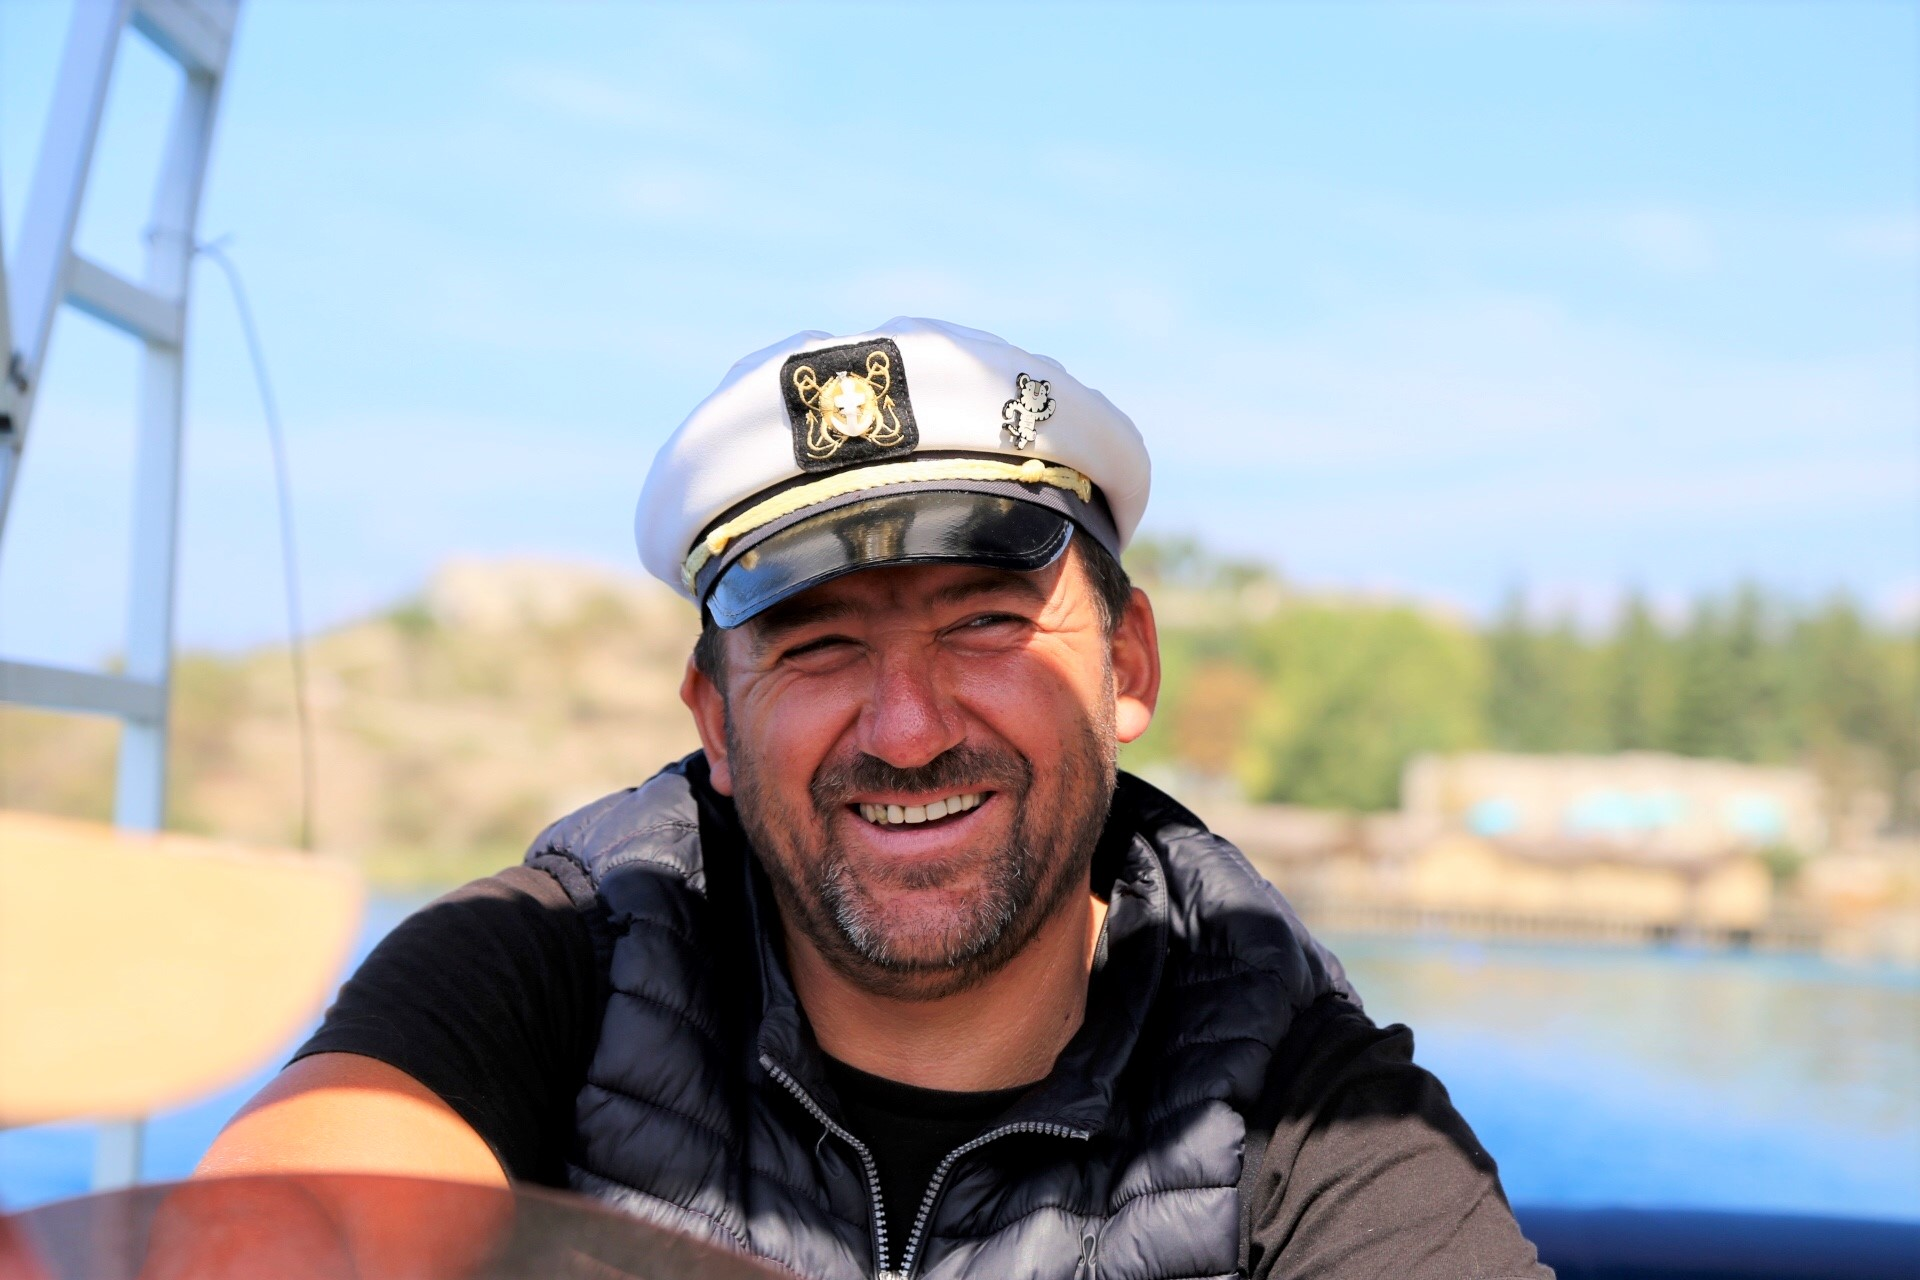 The smiling faces of Macedonia, our boat captain.